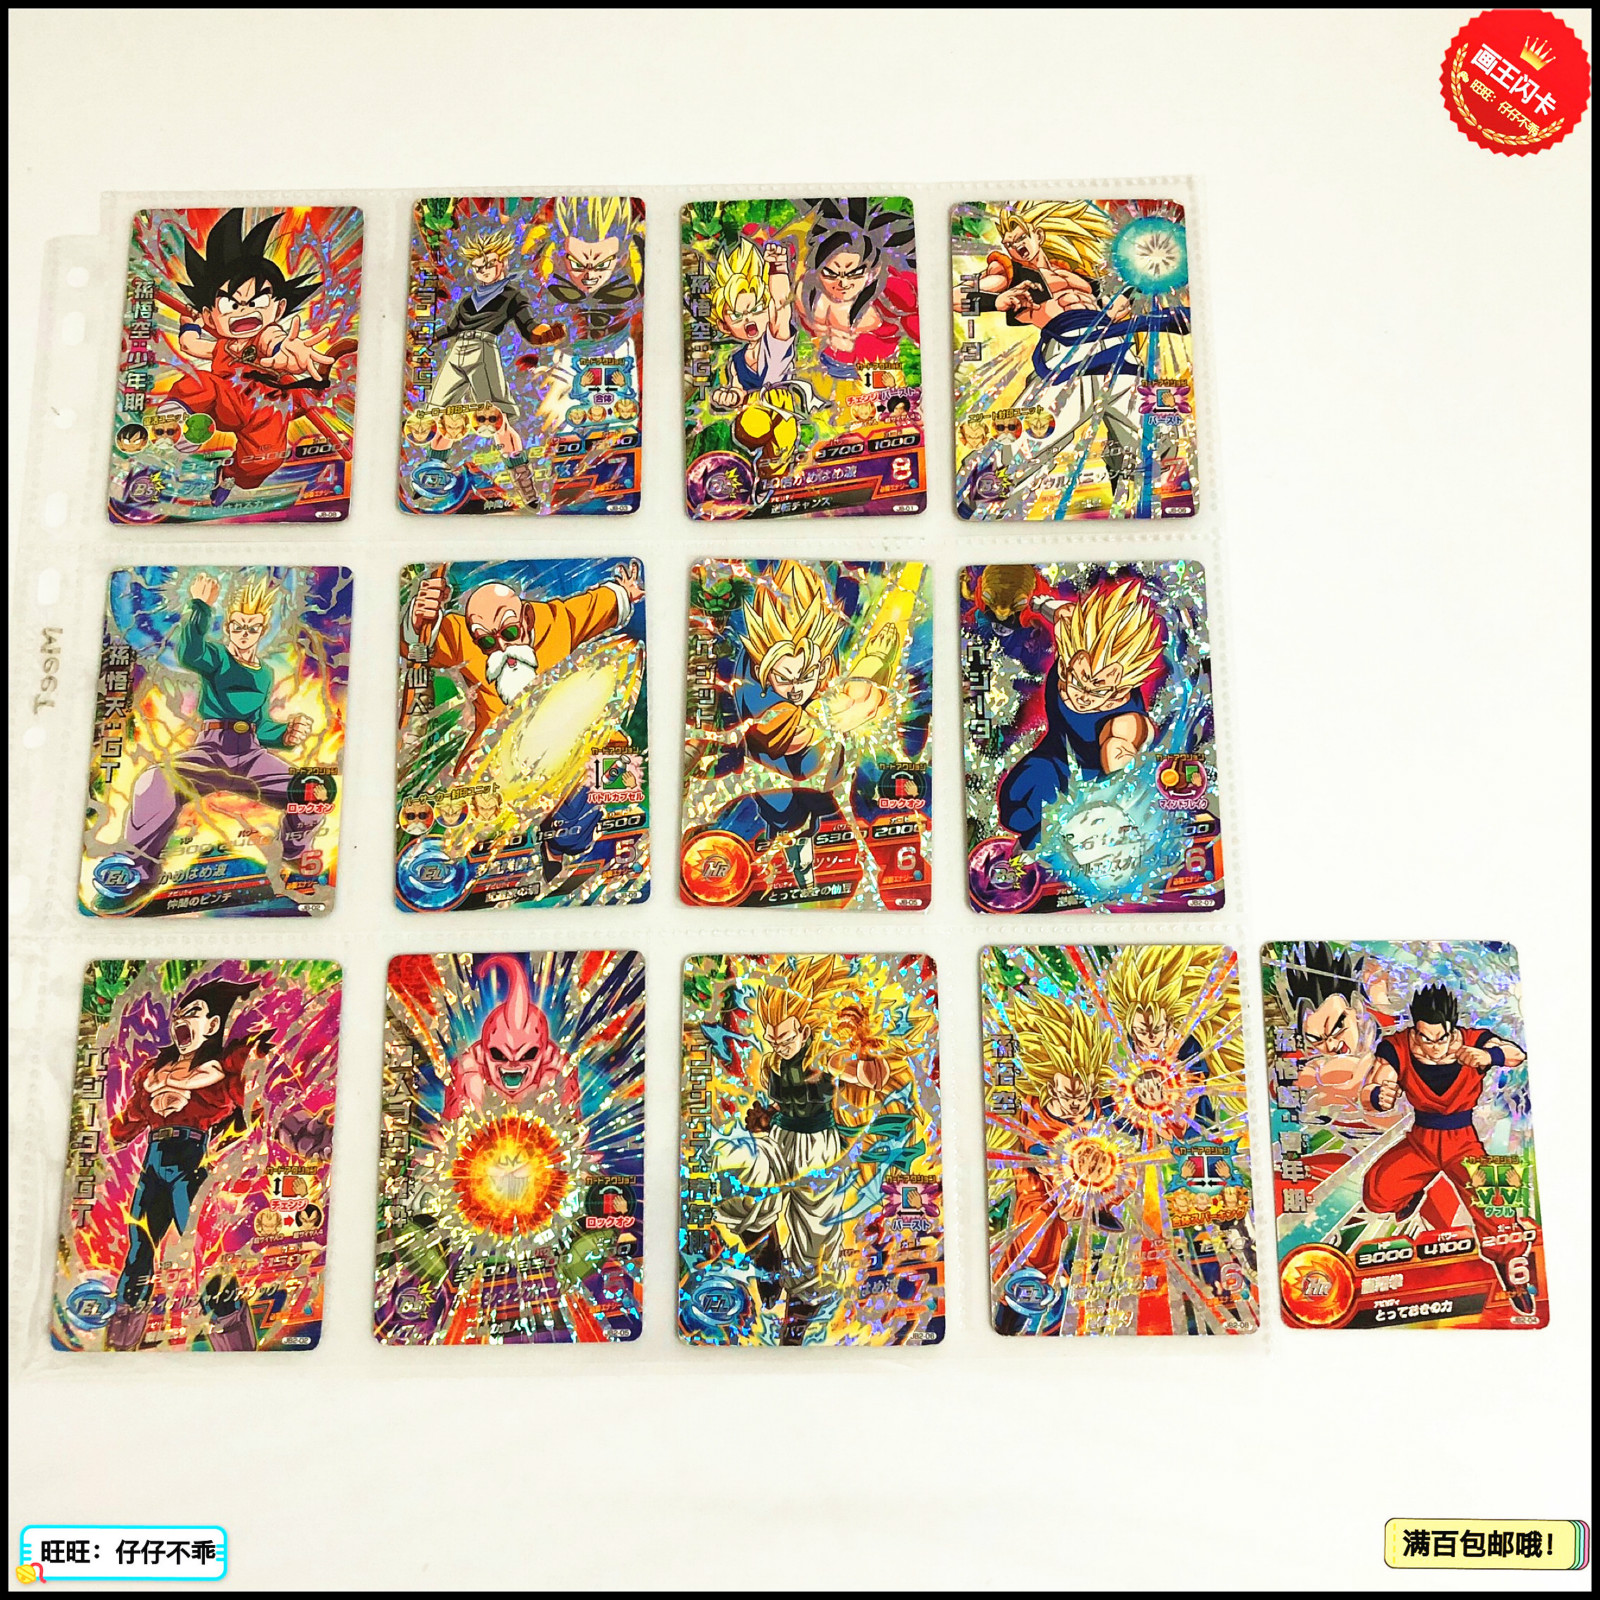 Japan Original Dragon Ball Hero Card JB1 2 SEC Goku Toys Hobbies Collectibles Game Collection Anime Cards